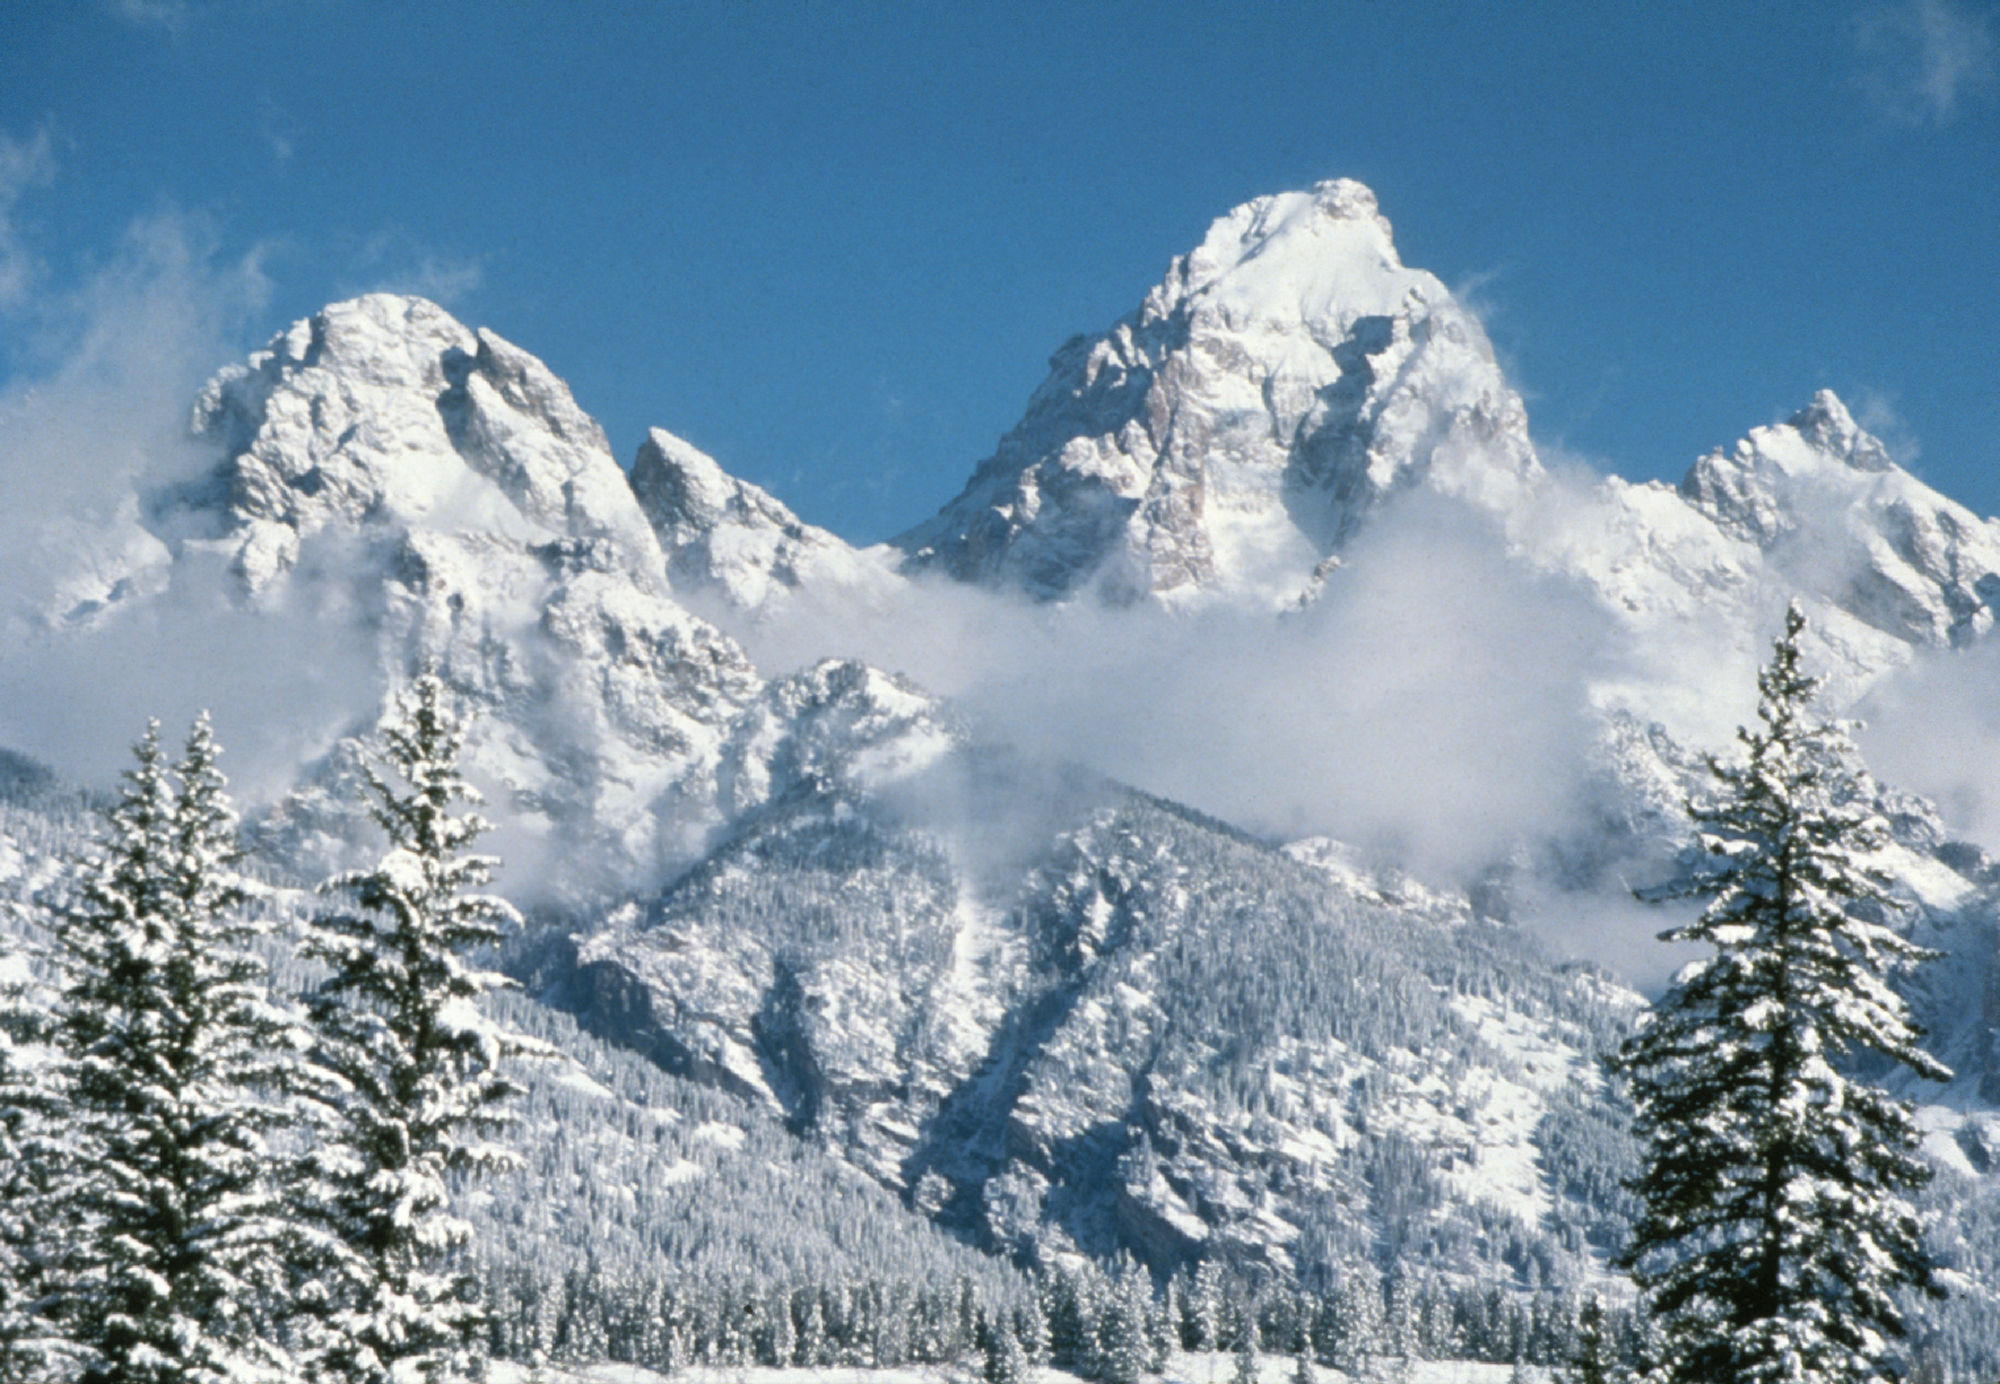 Grand Tetons Hd Desktop